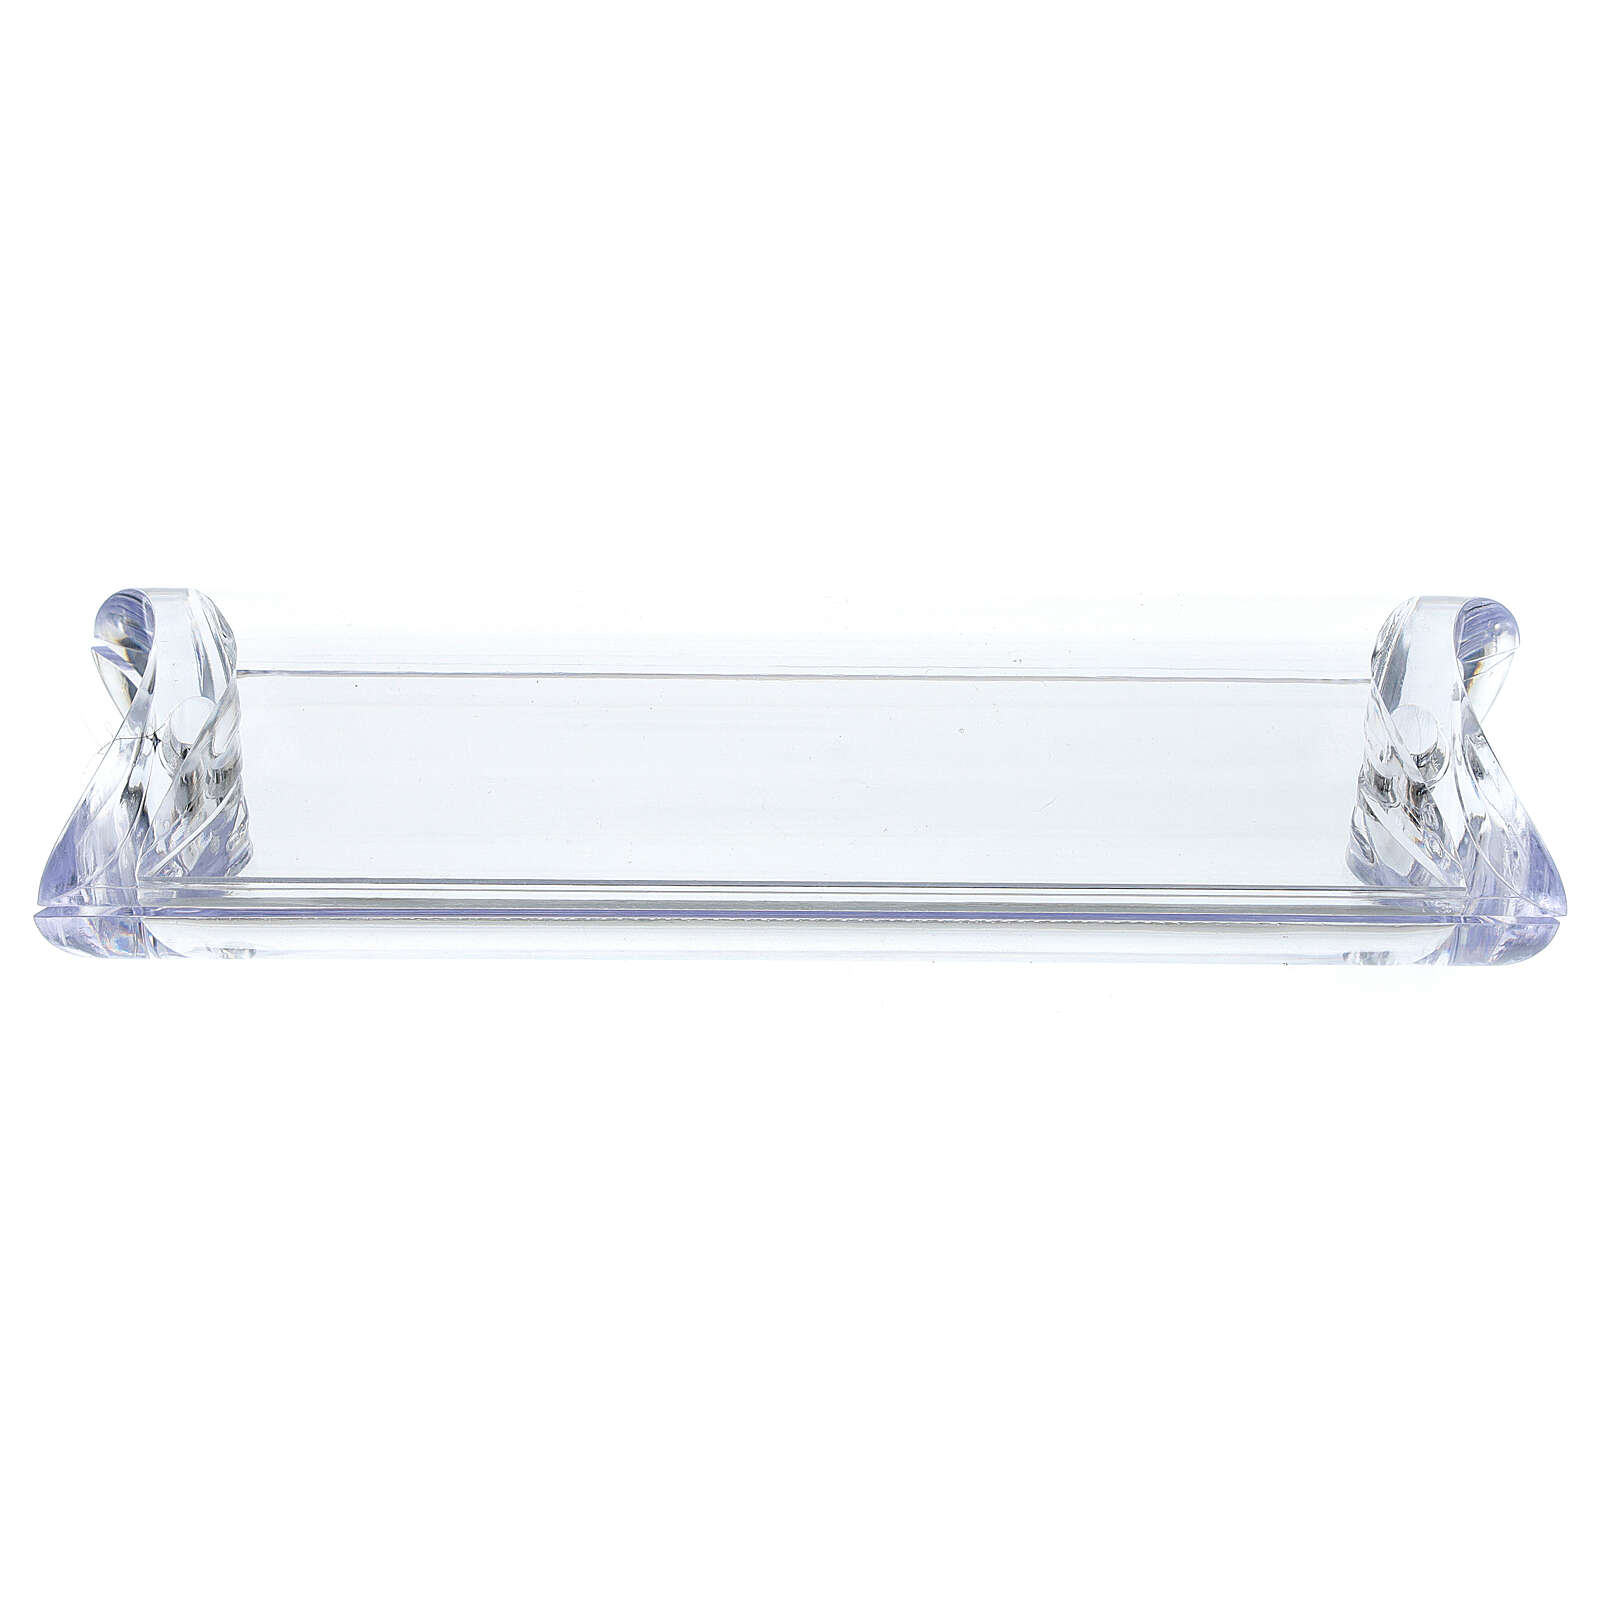 Tube rosary holder with magnetic closure 4